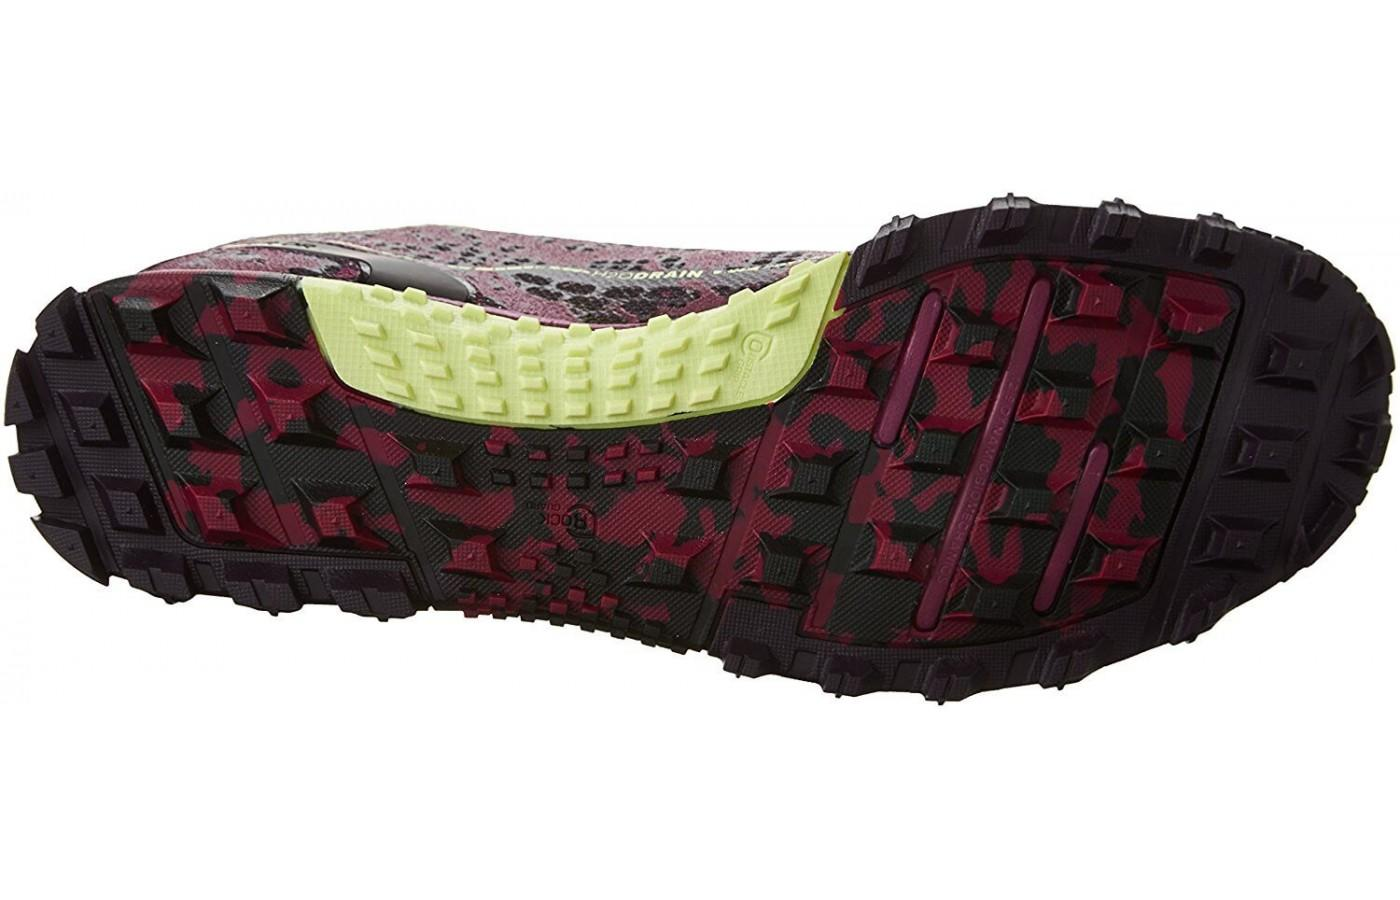 Here is the outsole of the Reebok All Terrain Super